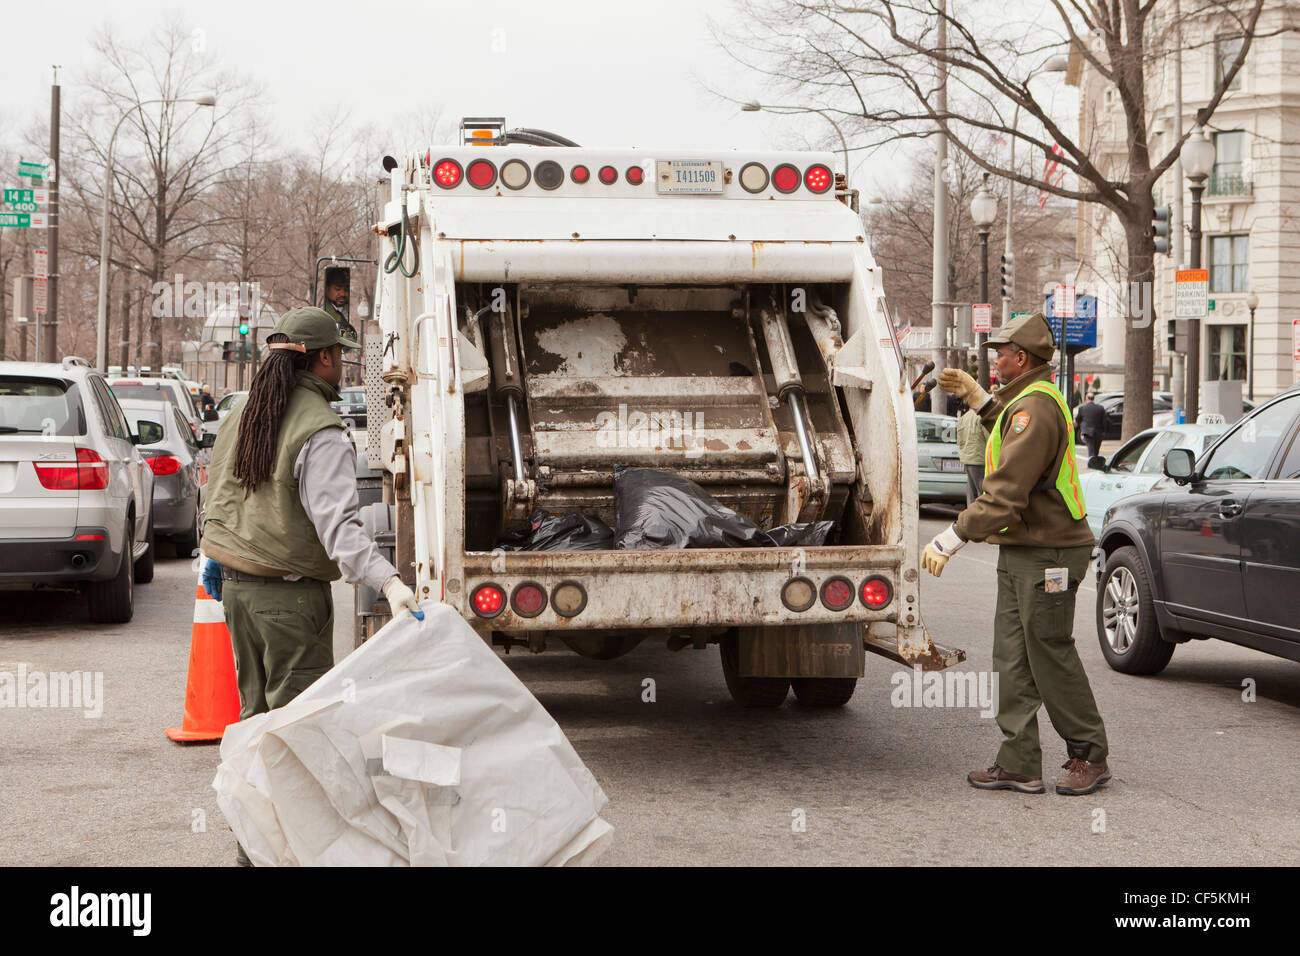 City refuse collection workers - Stock Image